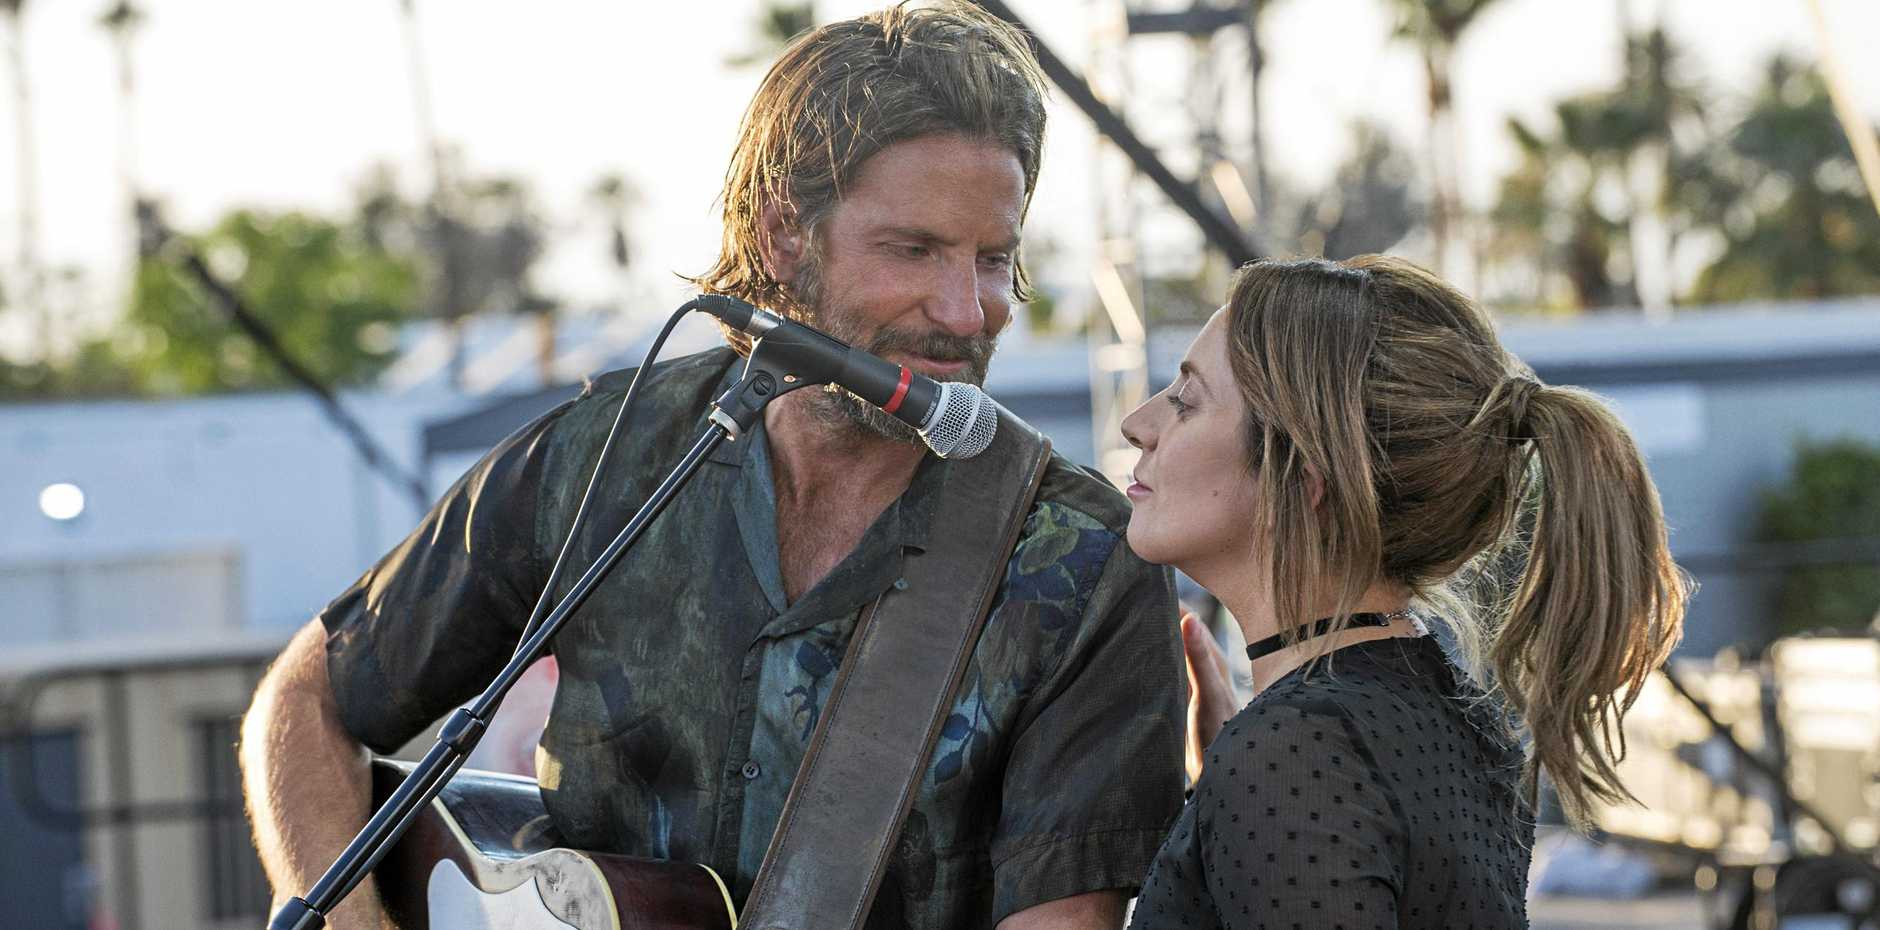 REMAKE: Bradley Cooper and Lady Gaga in a scene from the movie A Star Is Born.